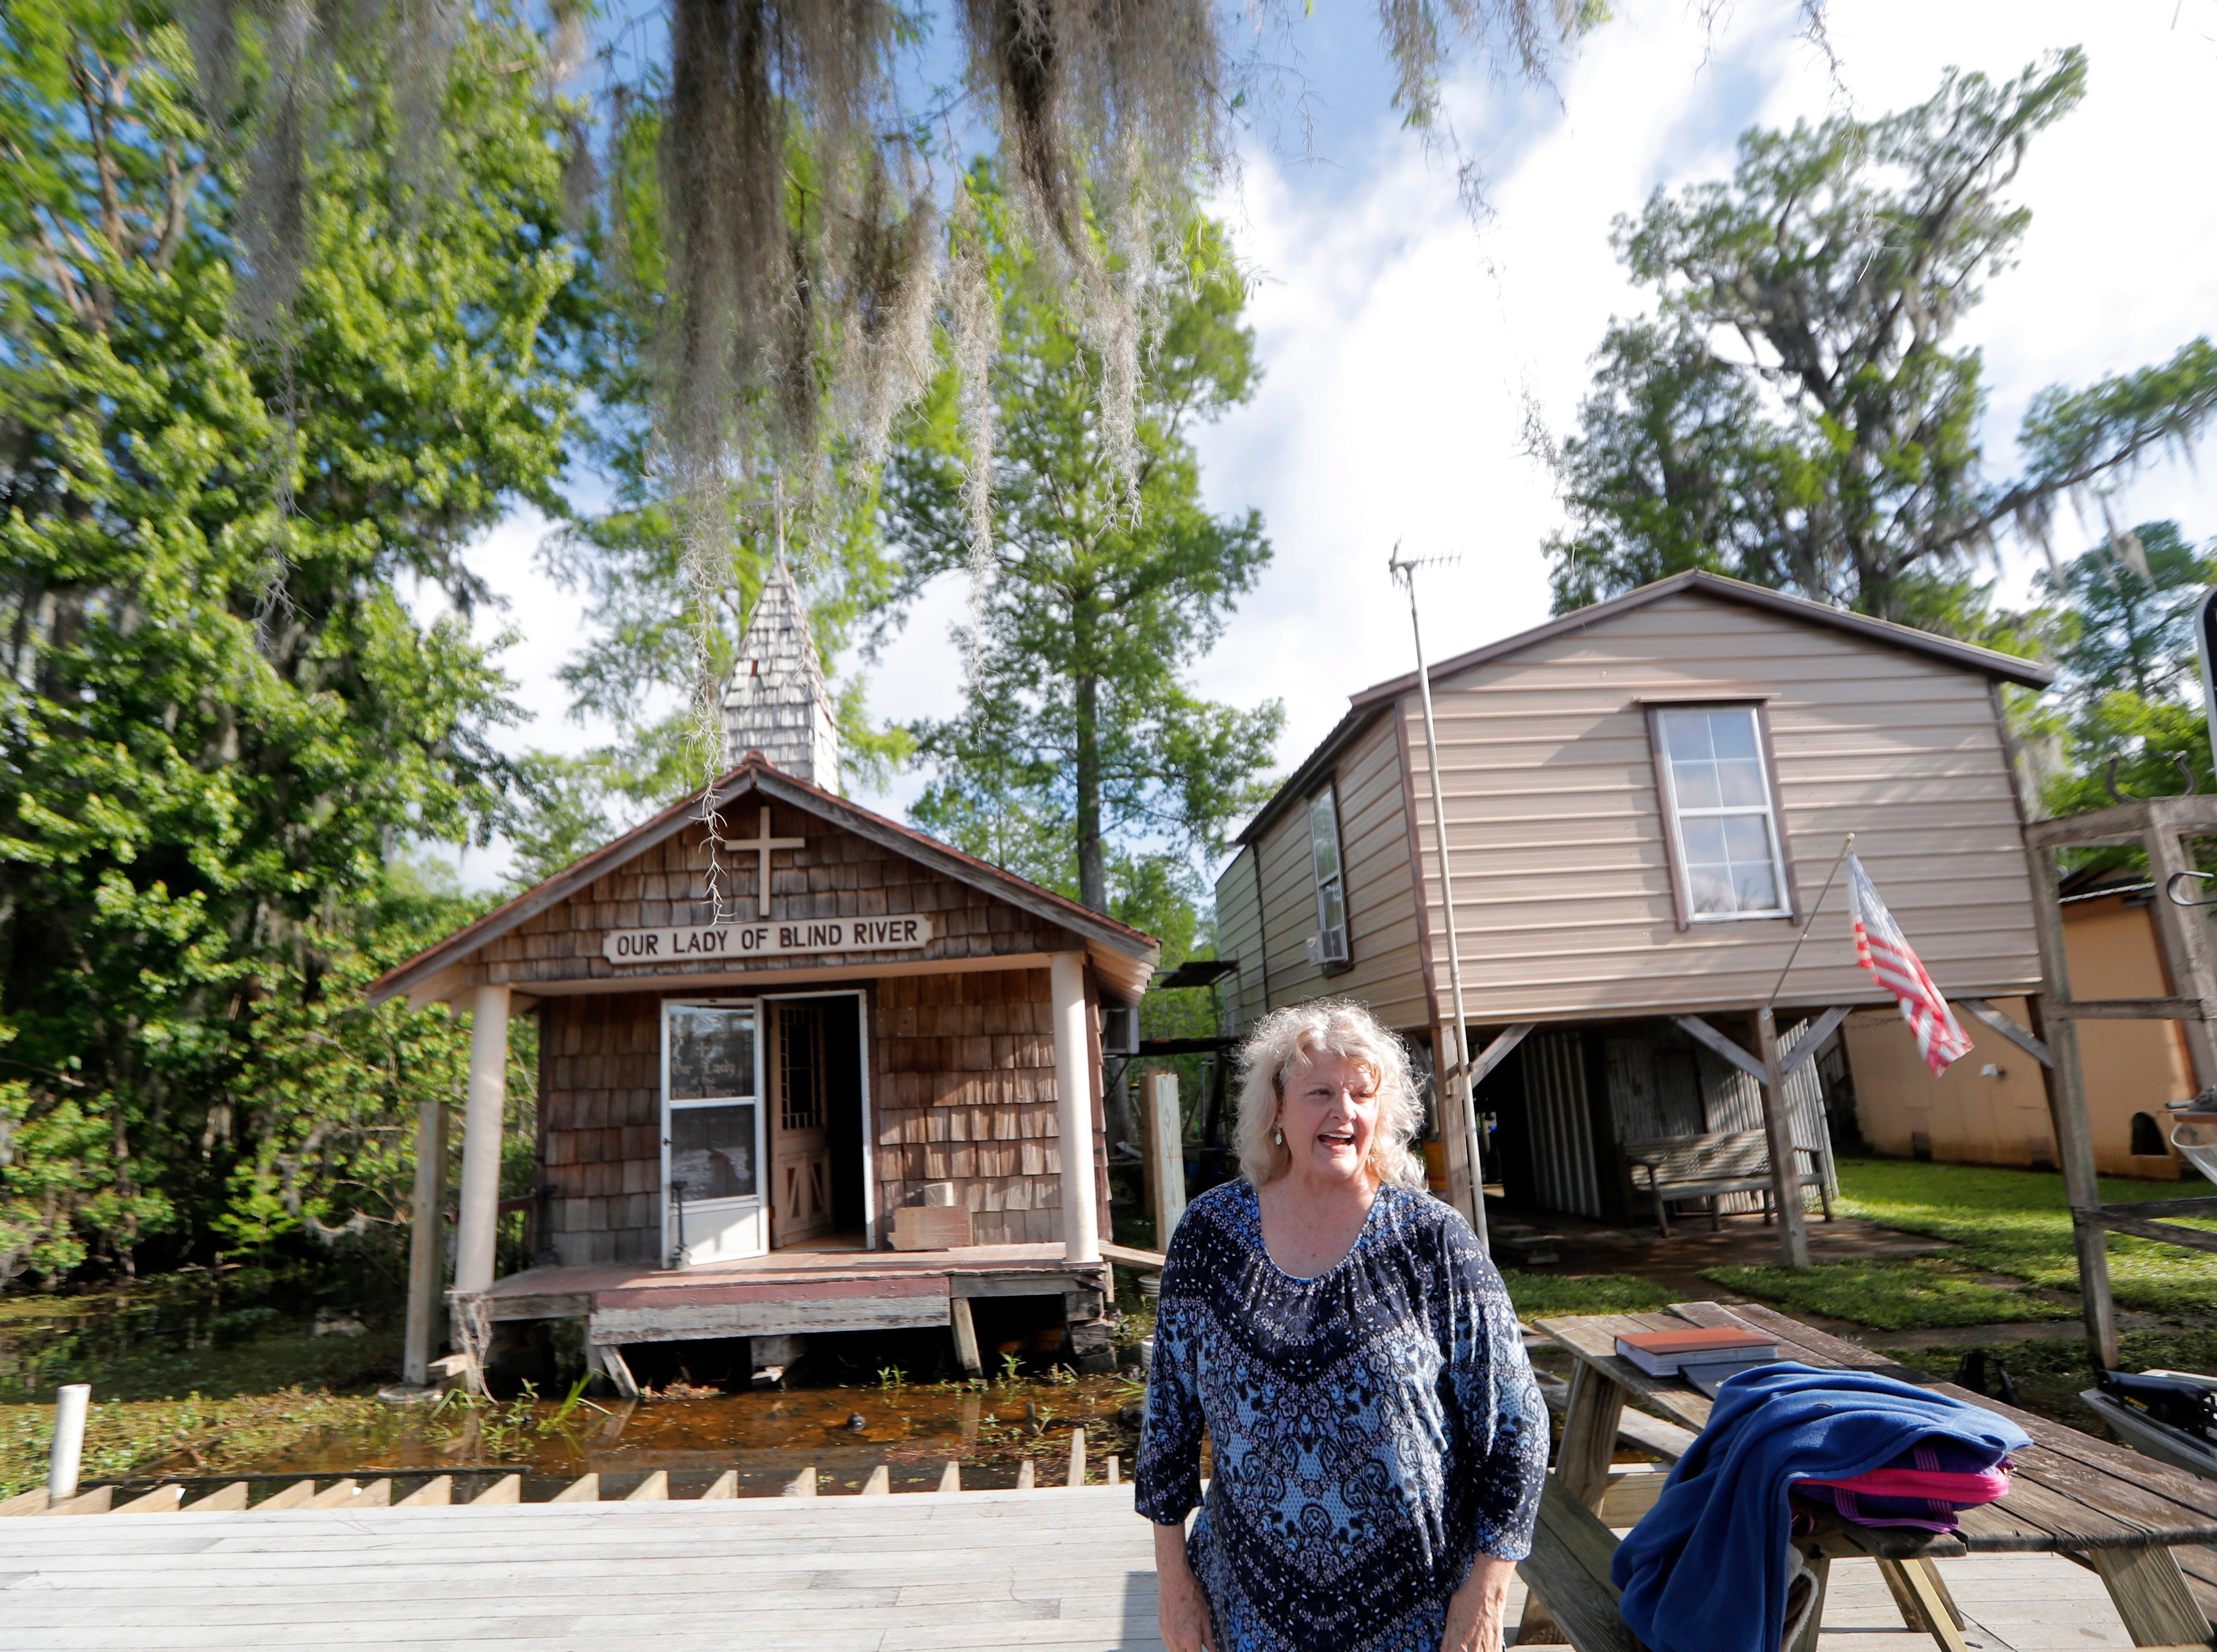 Pat Hymel stands on the dock in front of Our Lady of Blind River Chapel, along Blind River in St. James Parish, La., Tuesday, April 9, 2019. The chapel was built decades ago by her parents, Martha Deroche and her husband Bobby, after Martha had a vision of Jesus kneeling by a rock. Over the years, people have stopped by in boats or kayaks to pray in the one-room chapel. But floods over the years have damaged the little church, and the couple's grandson Lance Weber had to close it about two years ago out of safety concerns. (AP Photo/Gerald Herbert)